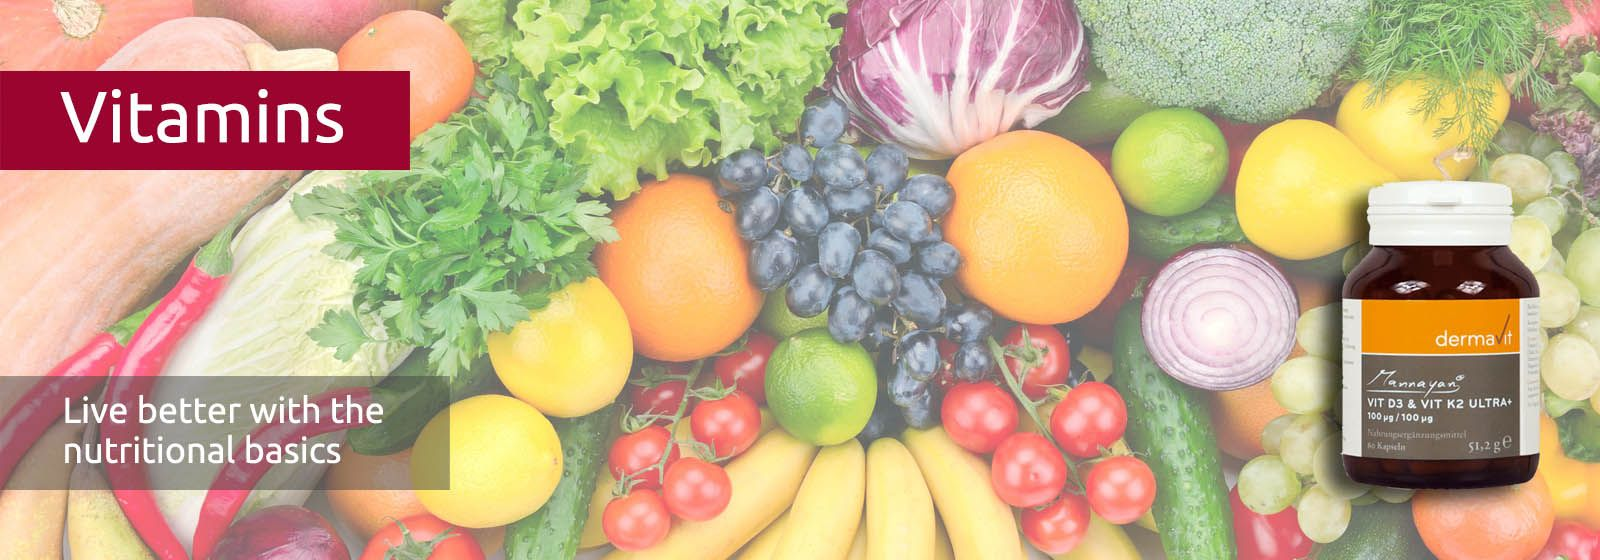 Fresh, tasty vegetables and fruit contain many vitamins